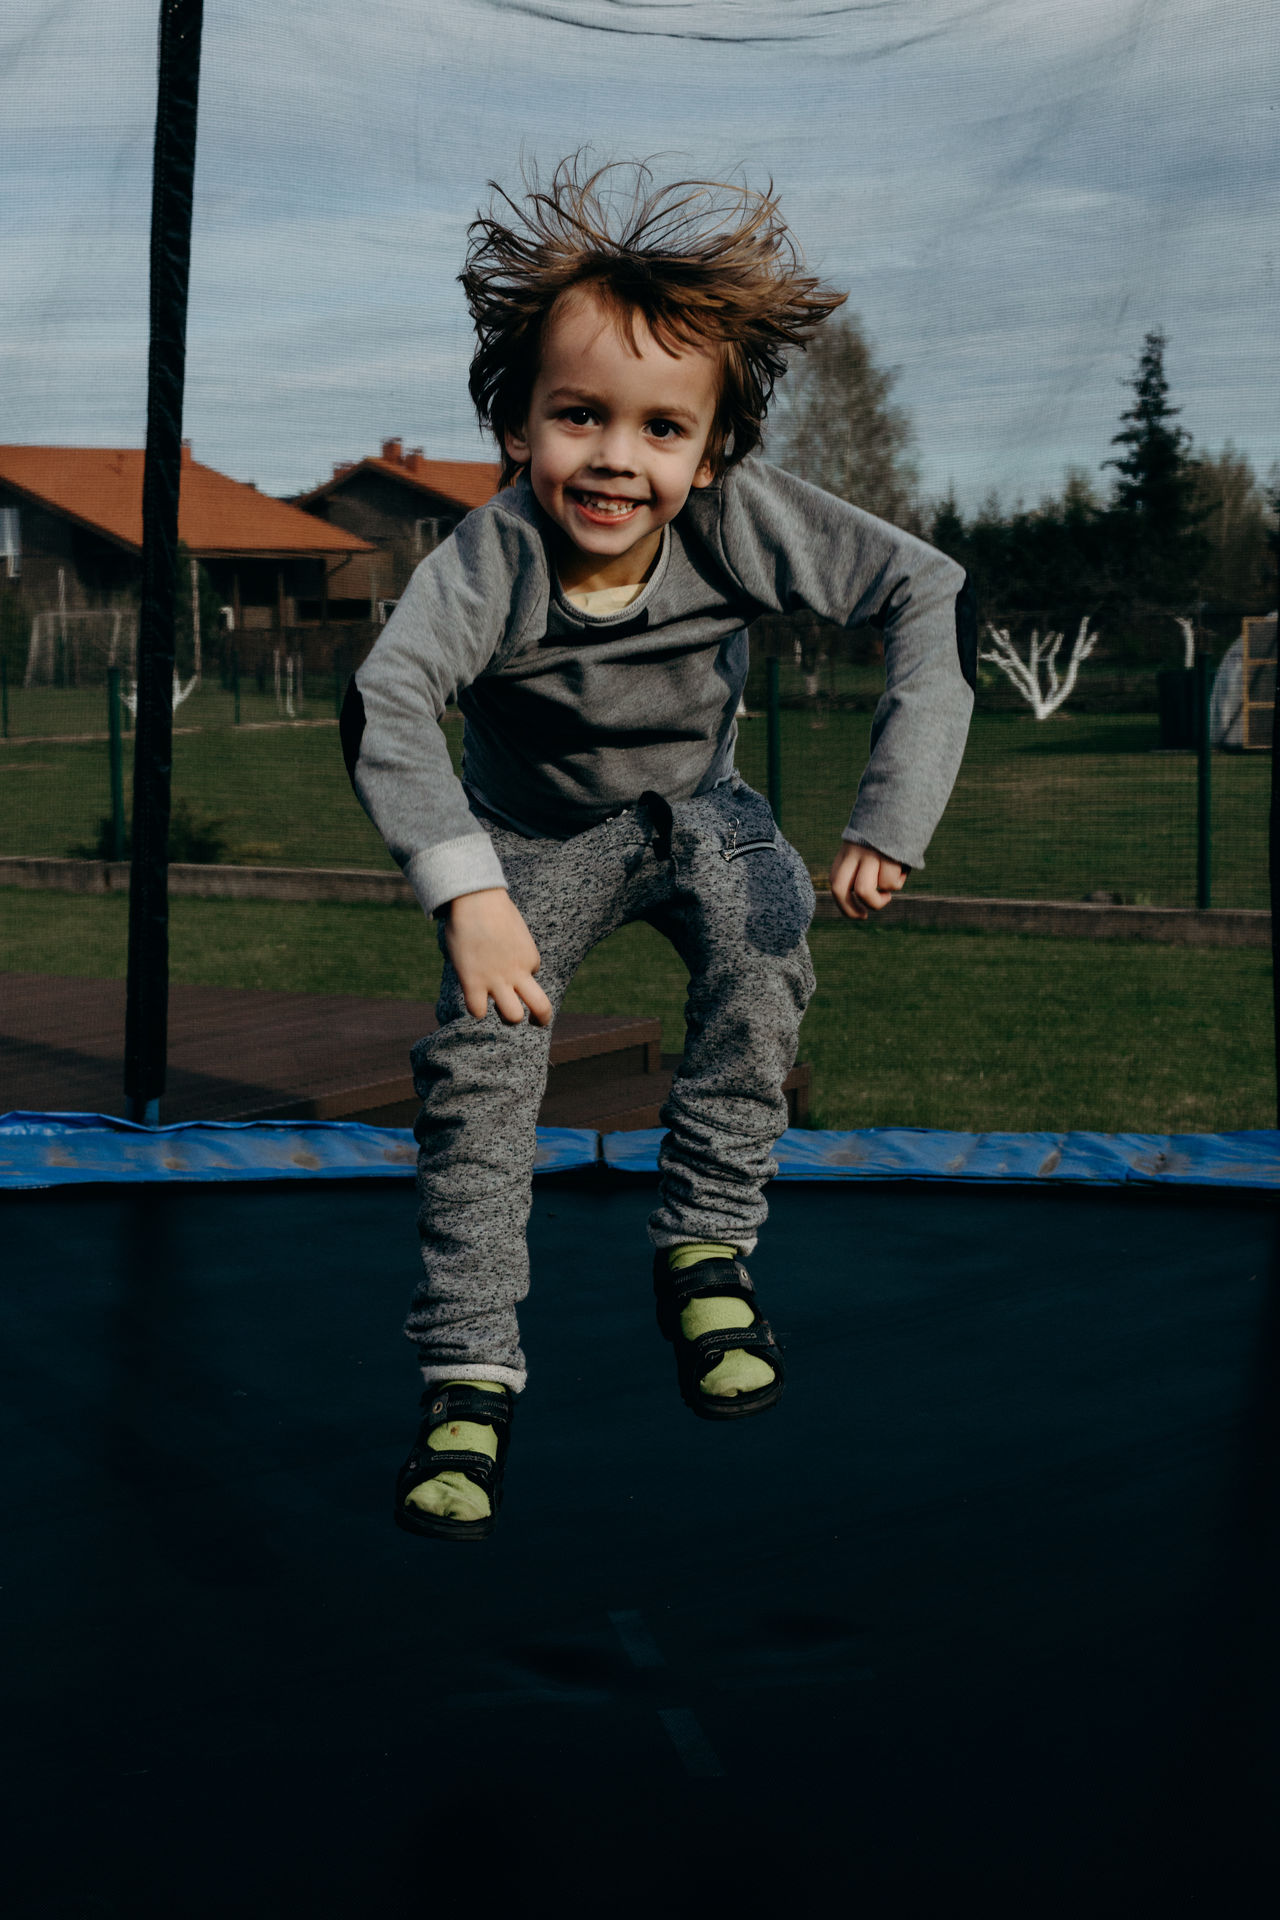 Boys Cheerful Childhood Day Elementary Age Enjoyment Front View Full Length Fun Happiness Jumping Leisure Activity Looking At Camera Motion One Person Outdoors People Playing Portrait Real People Sky Smiling Tree